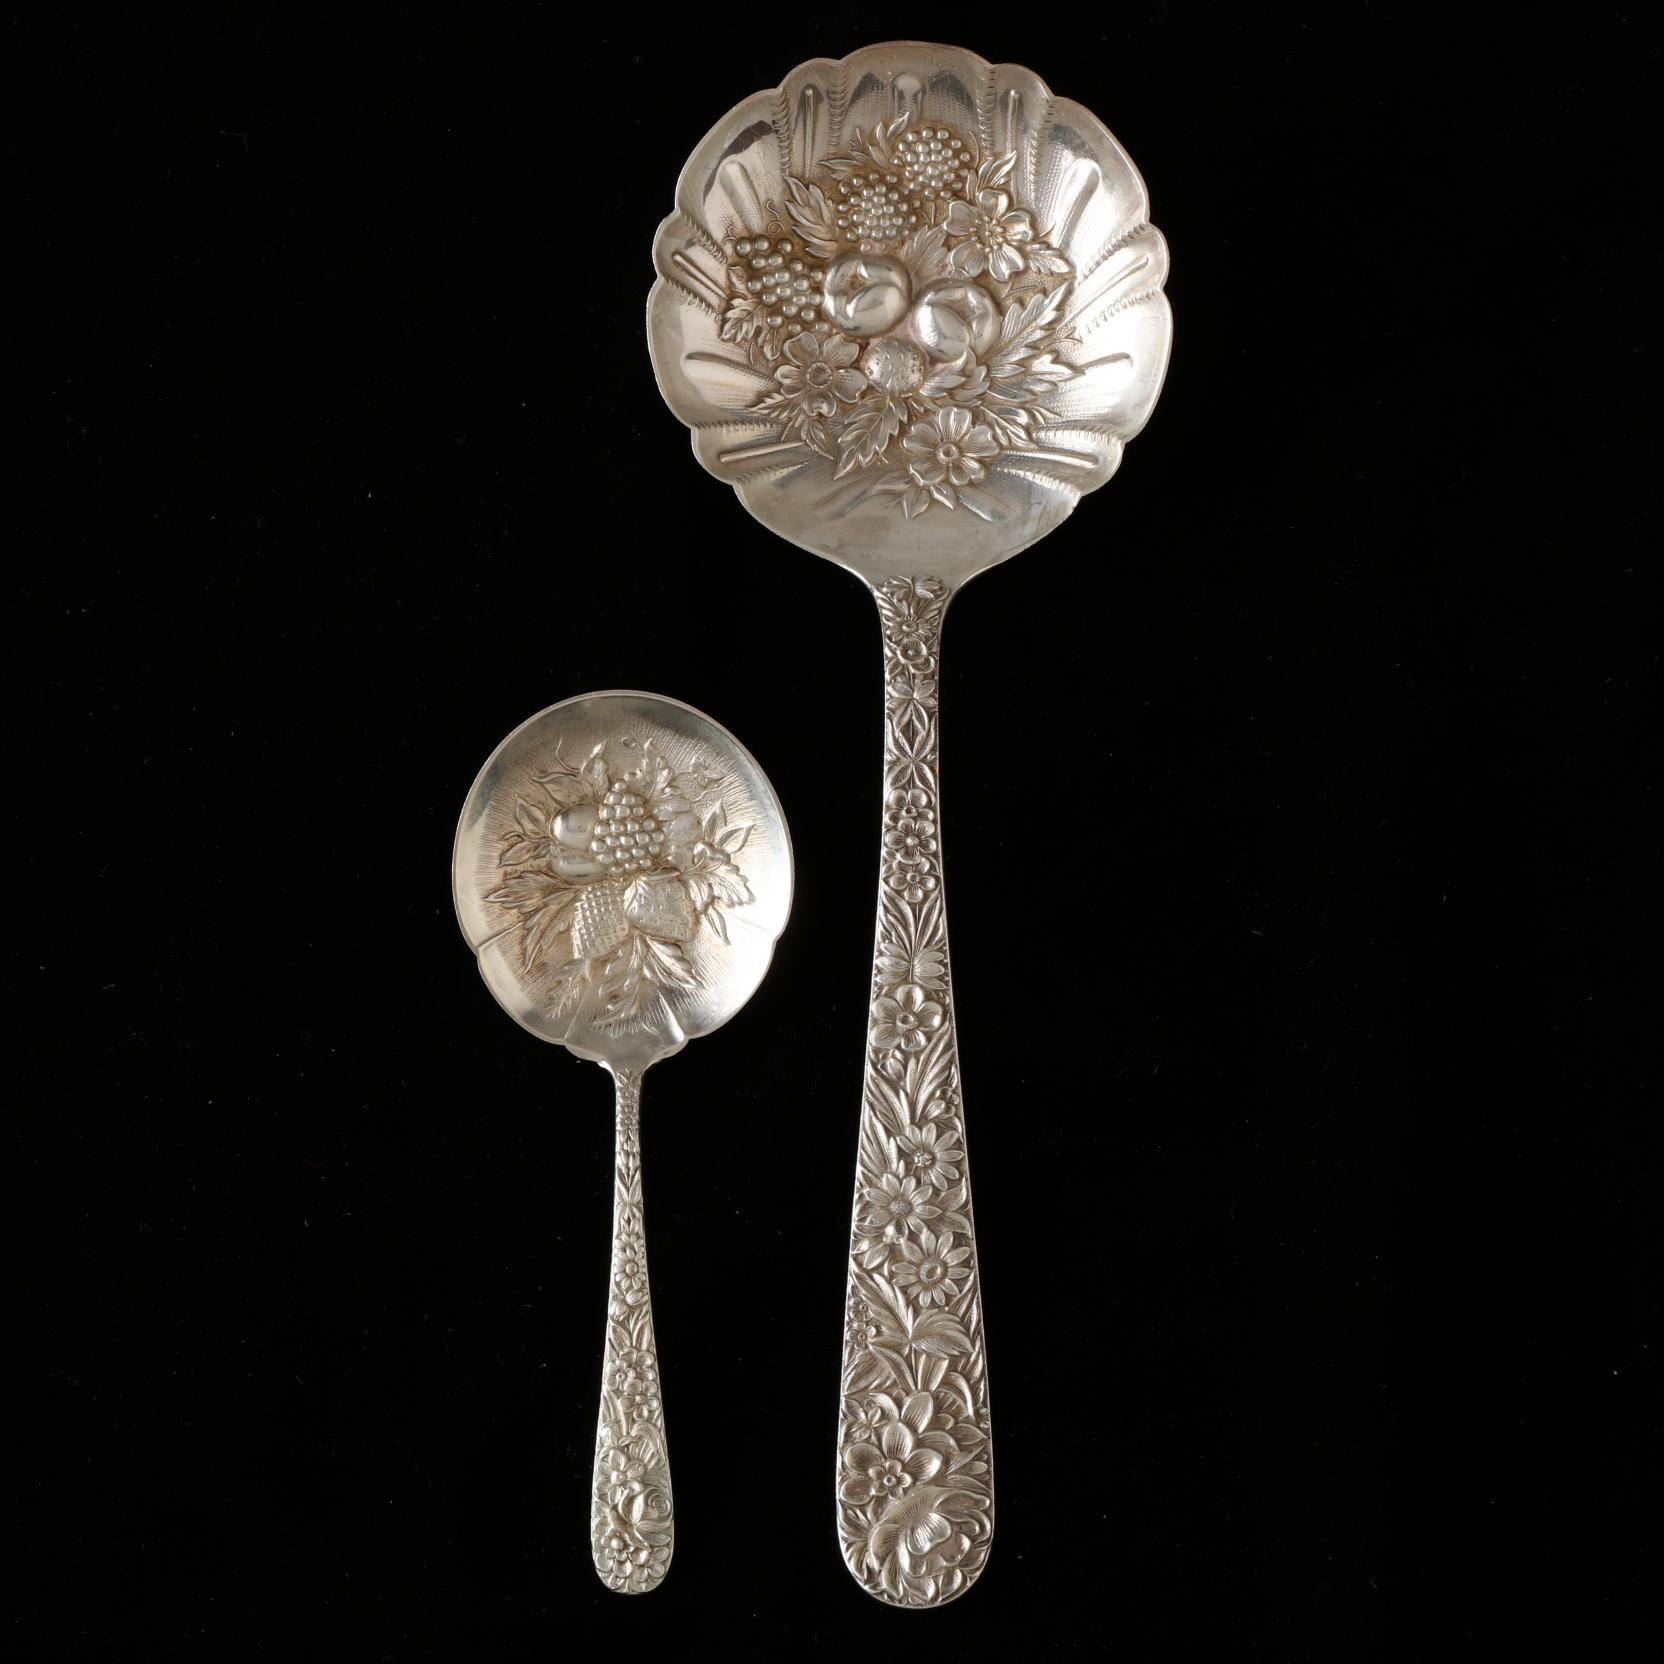 two-s-kirk-son-repousse-sterling-silver-servers